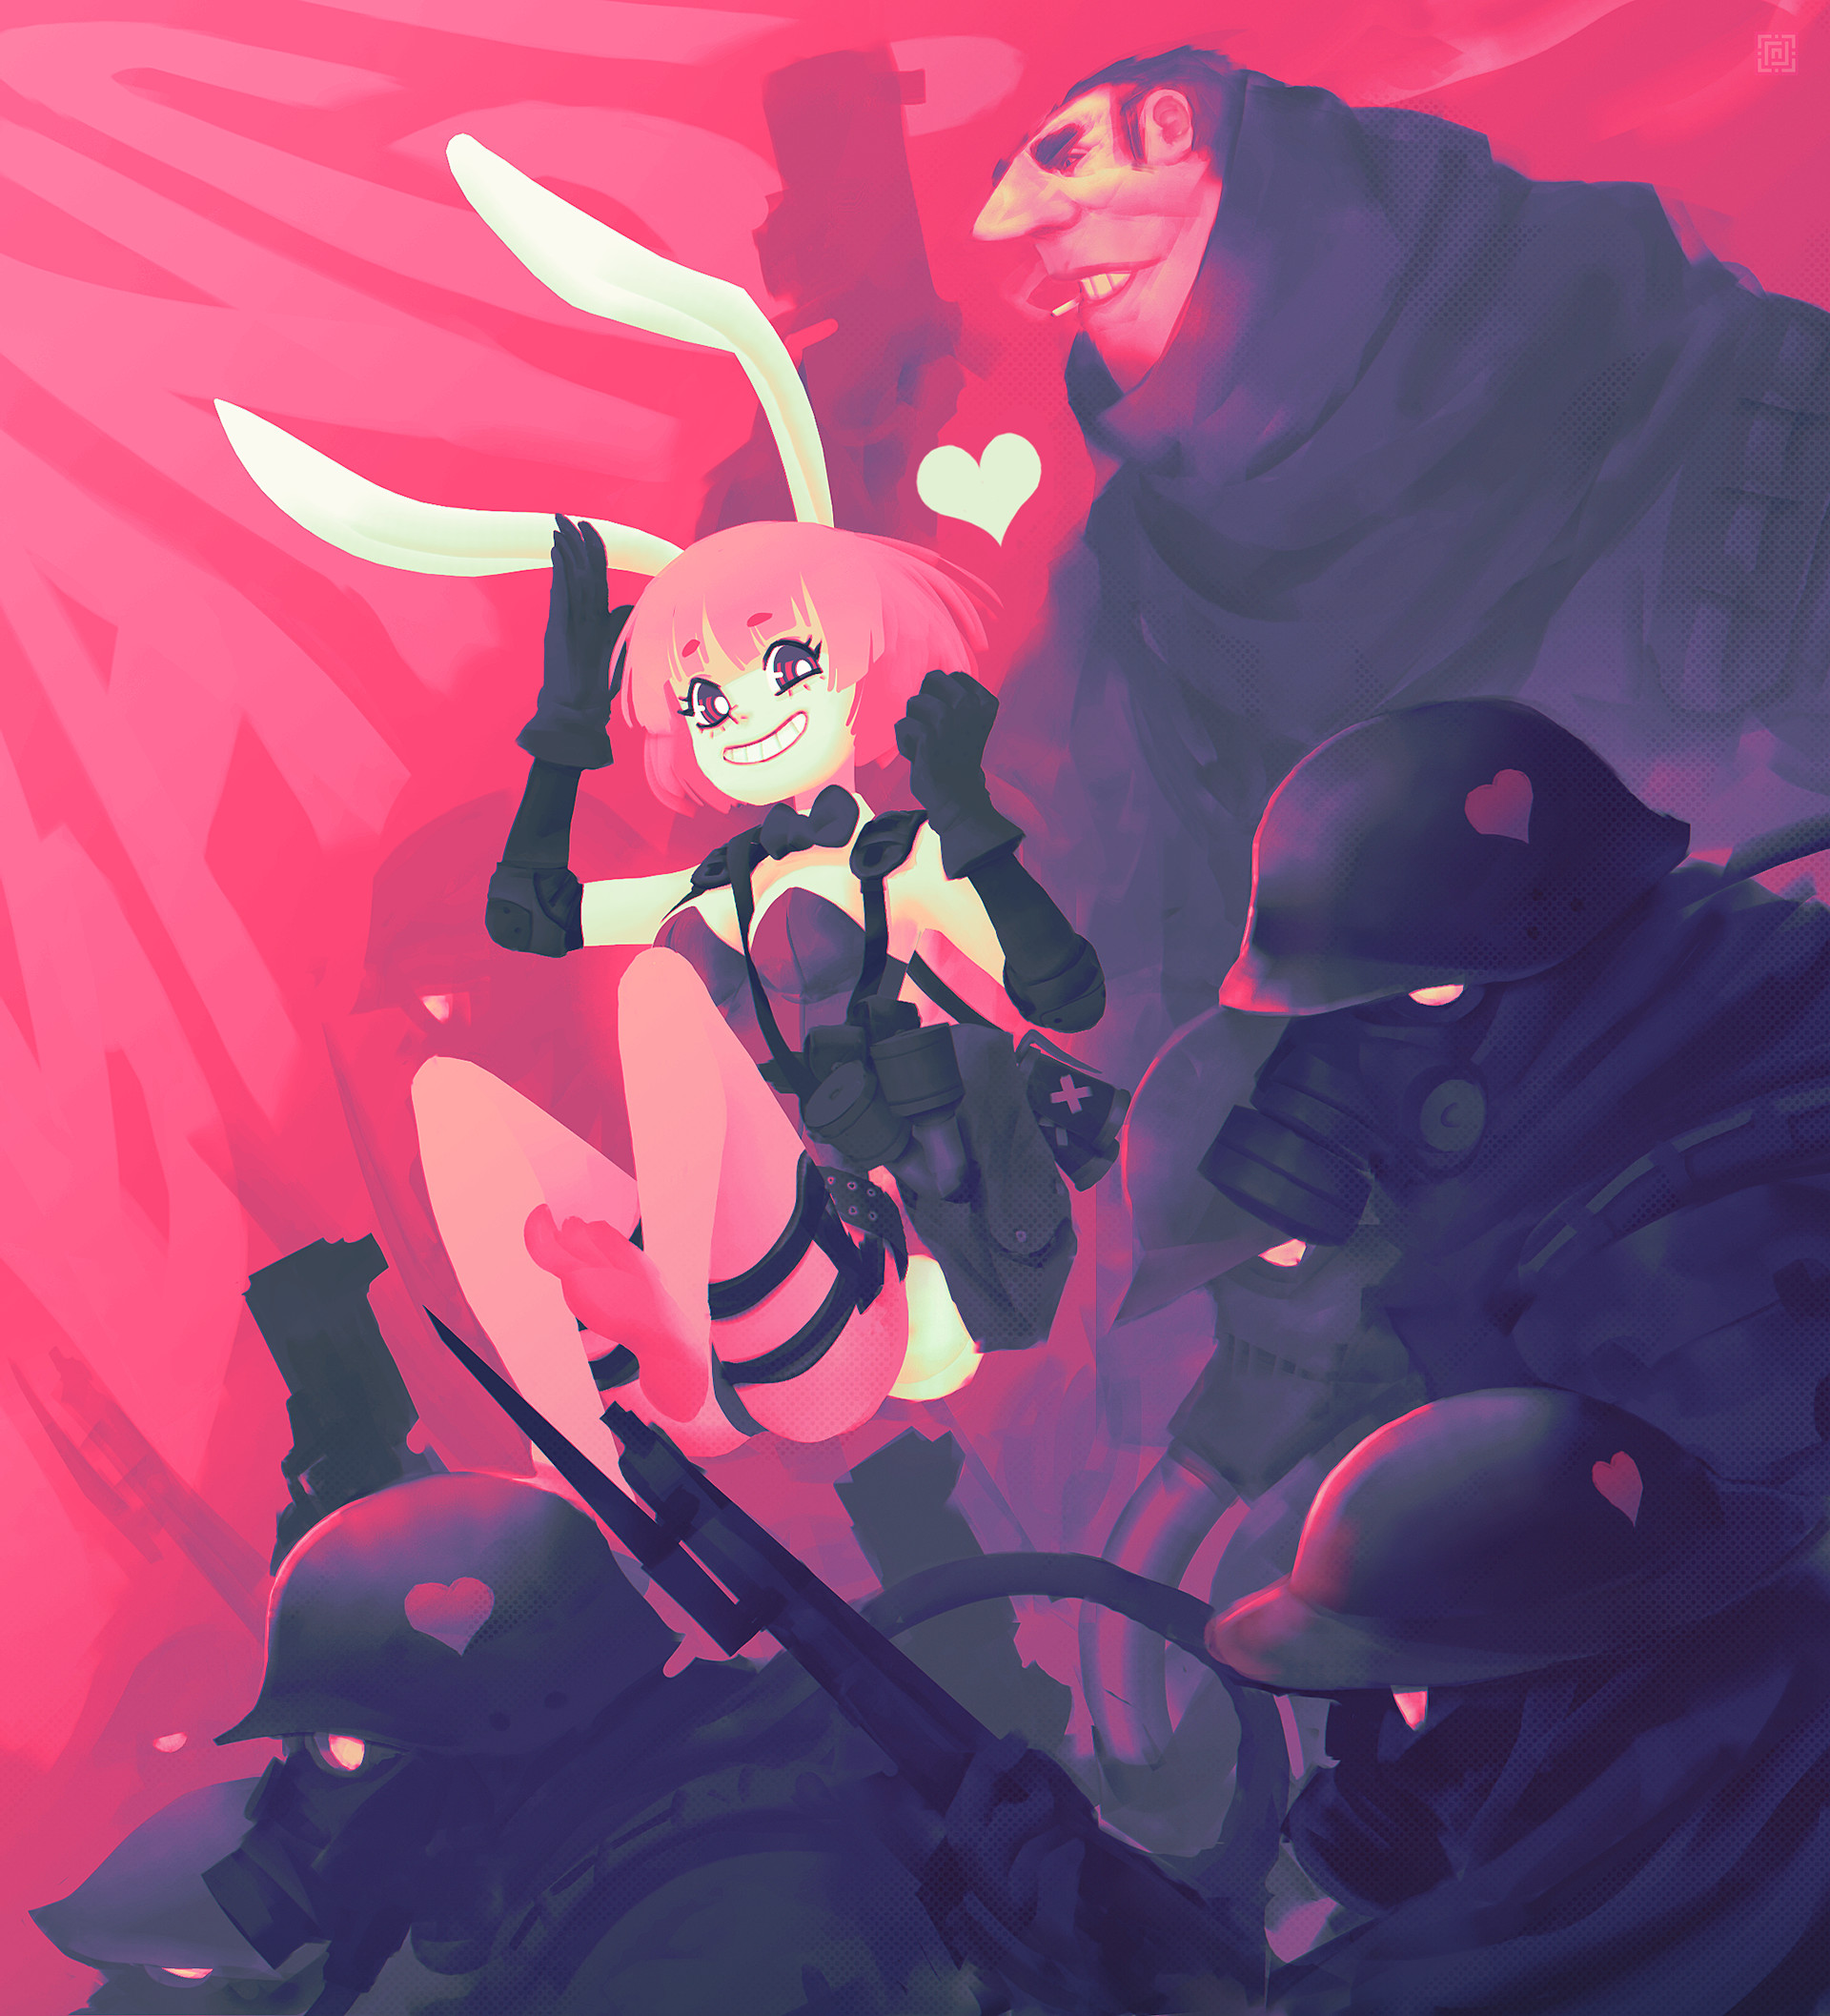 Deadslug_digital_painting_illustration_girl_soldiers_pink_bunny